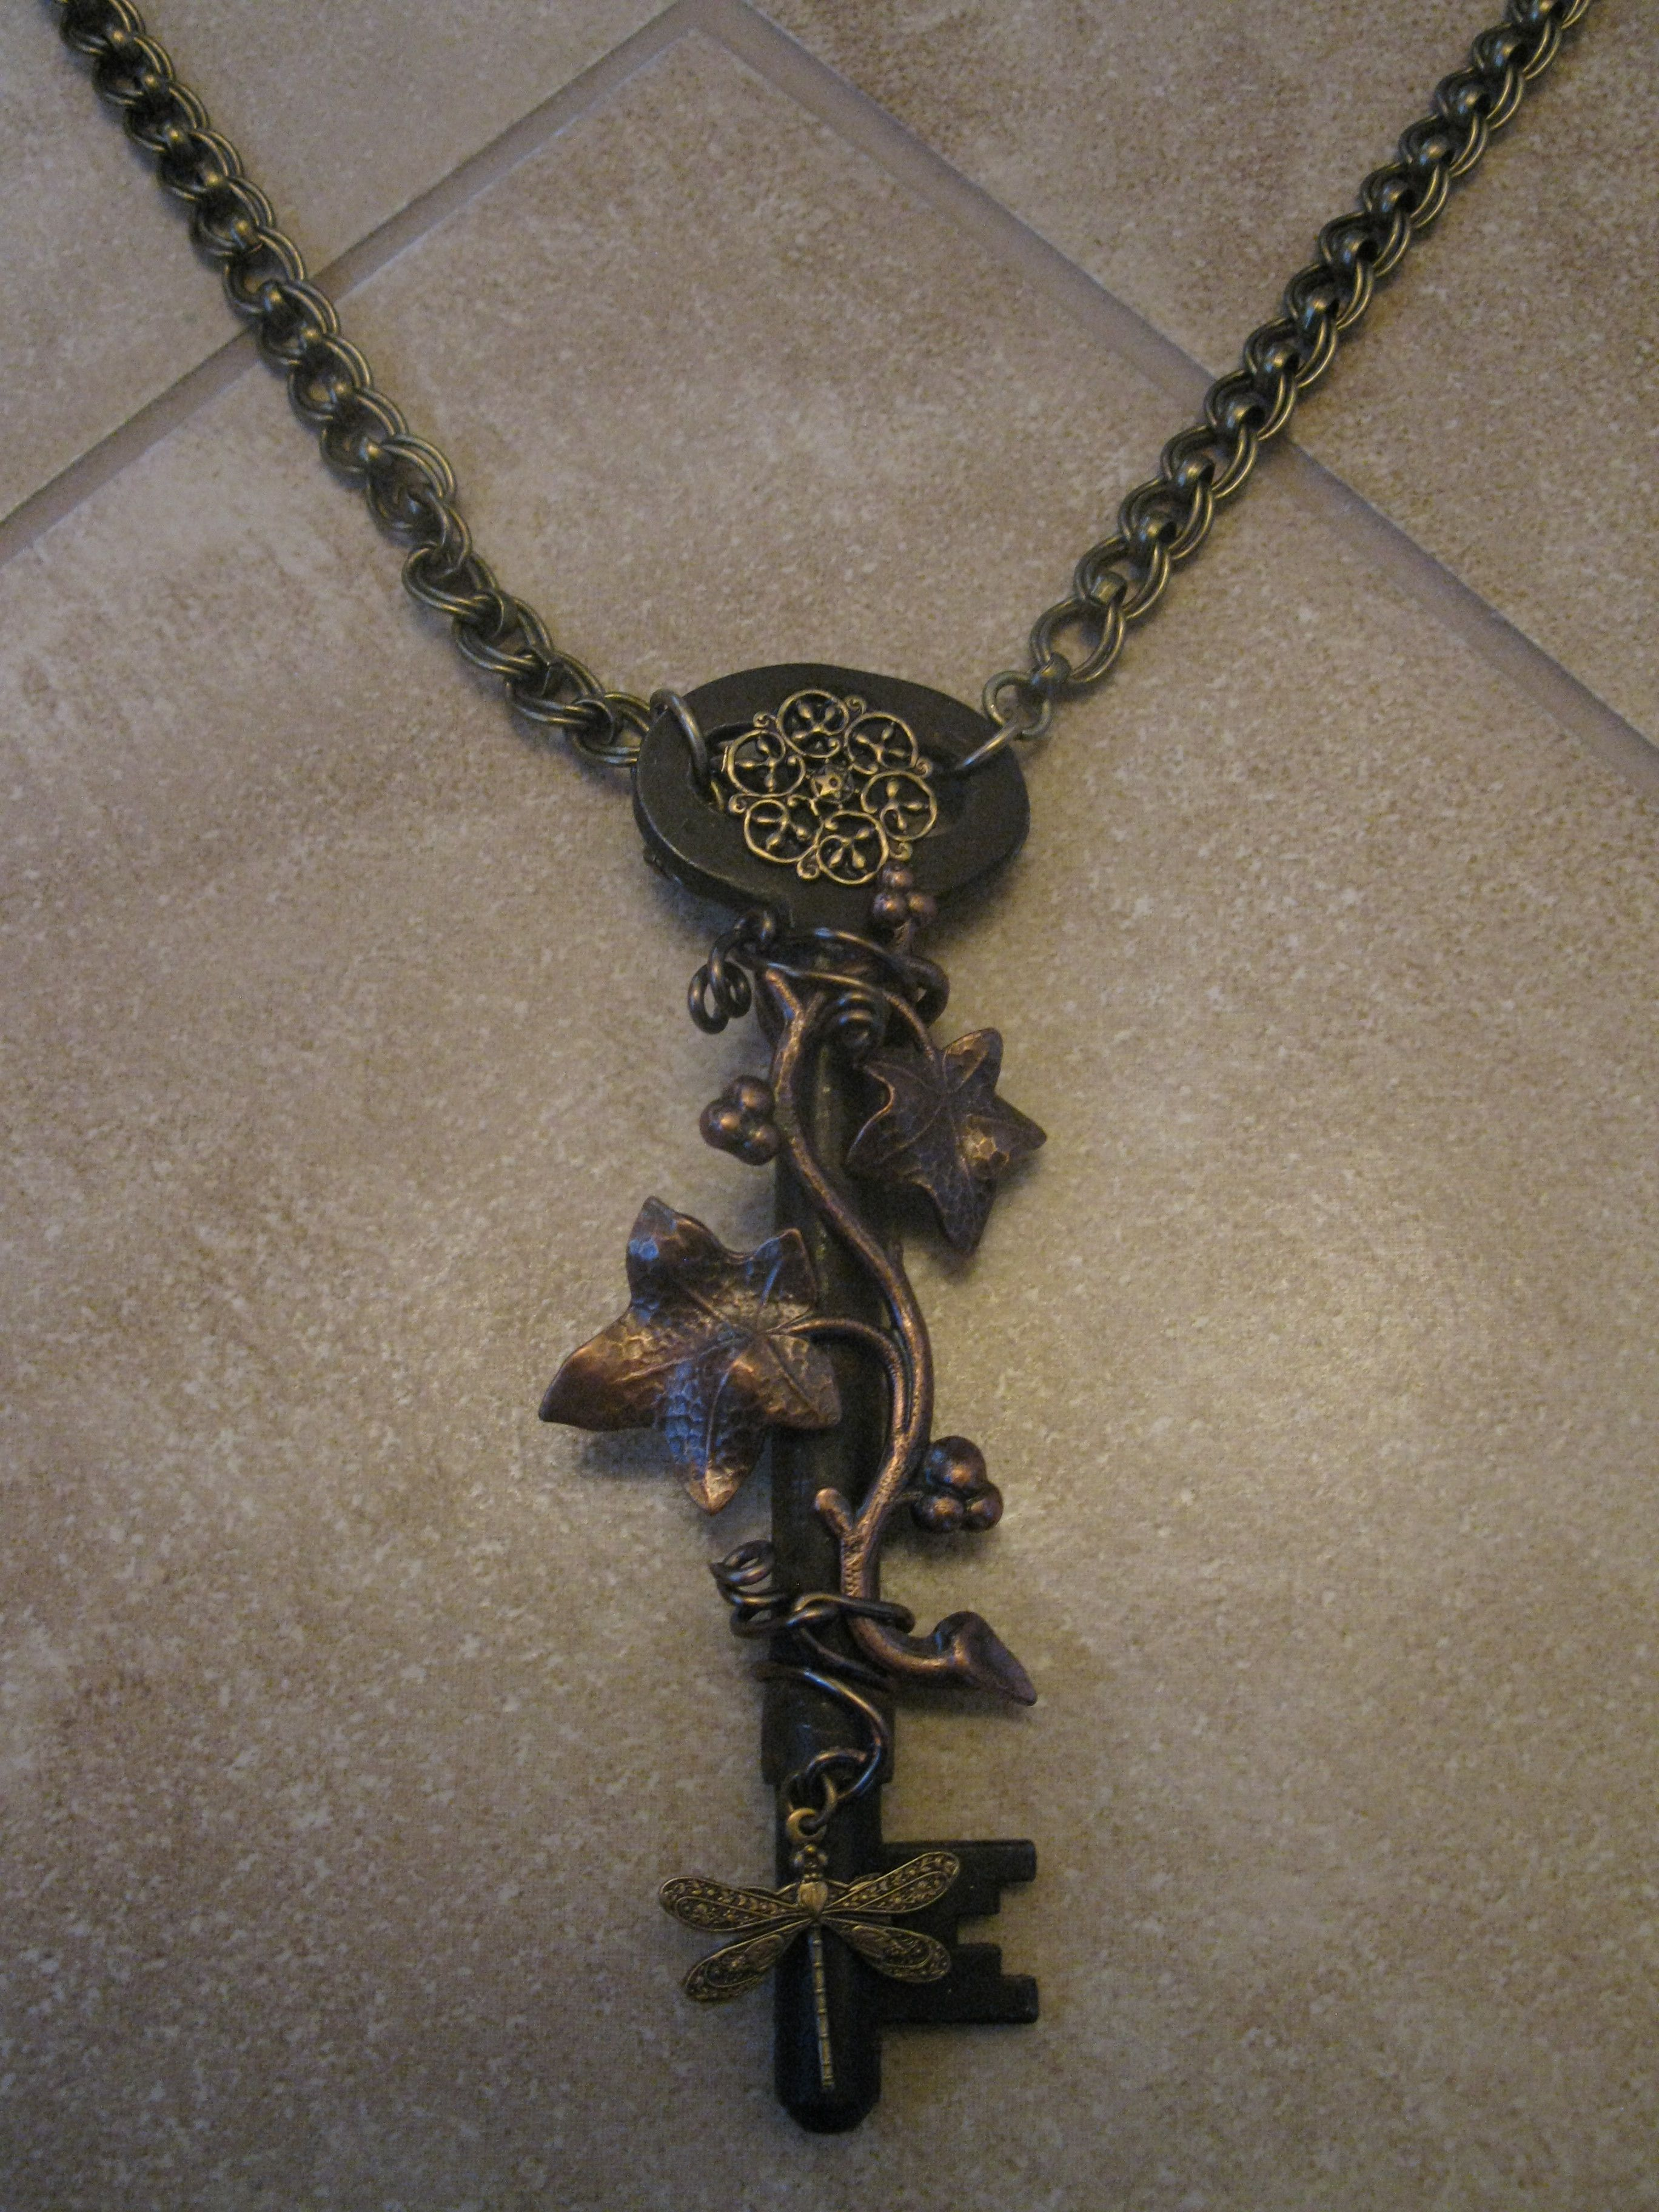 Antique key with brass and copper additions.  Note my little Dragonfly which I love to sneak in now and then!